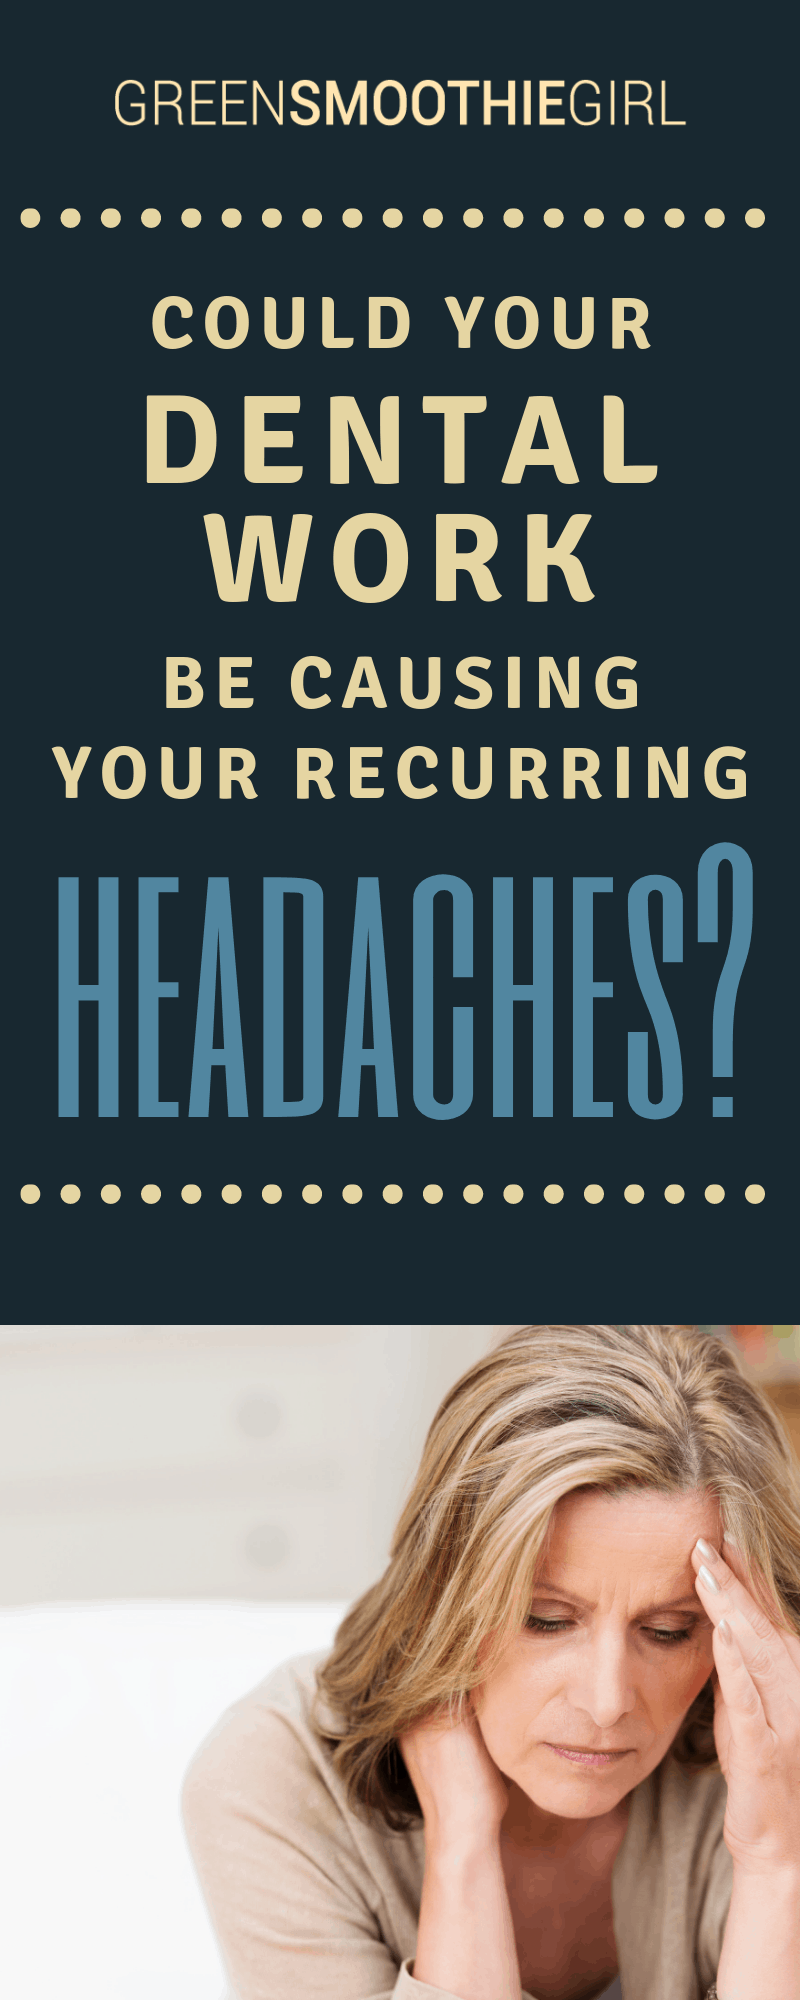 Could Your Dental Work Be Causing Your Recurring Headaches? | Green Smoothie Girl